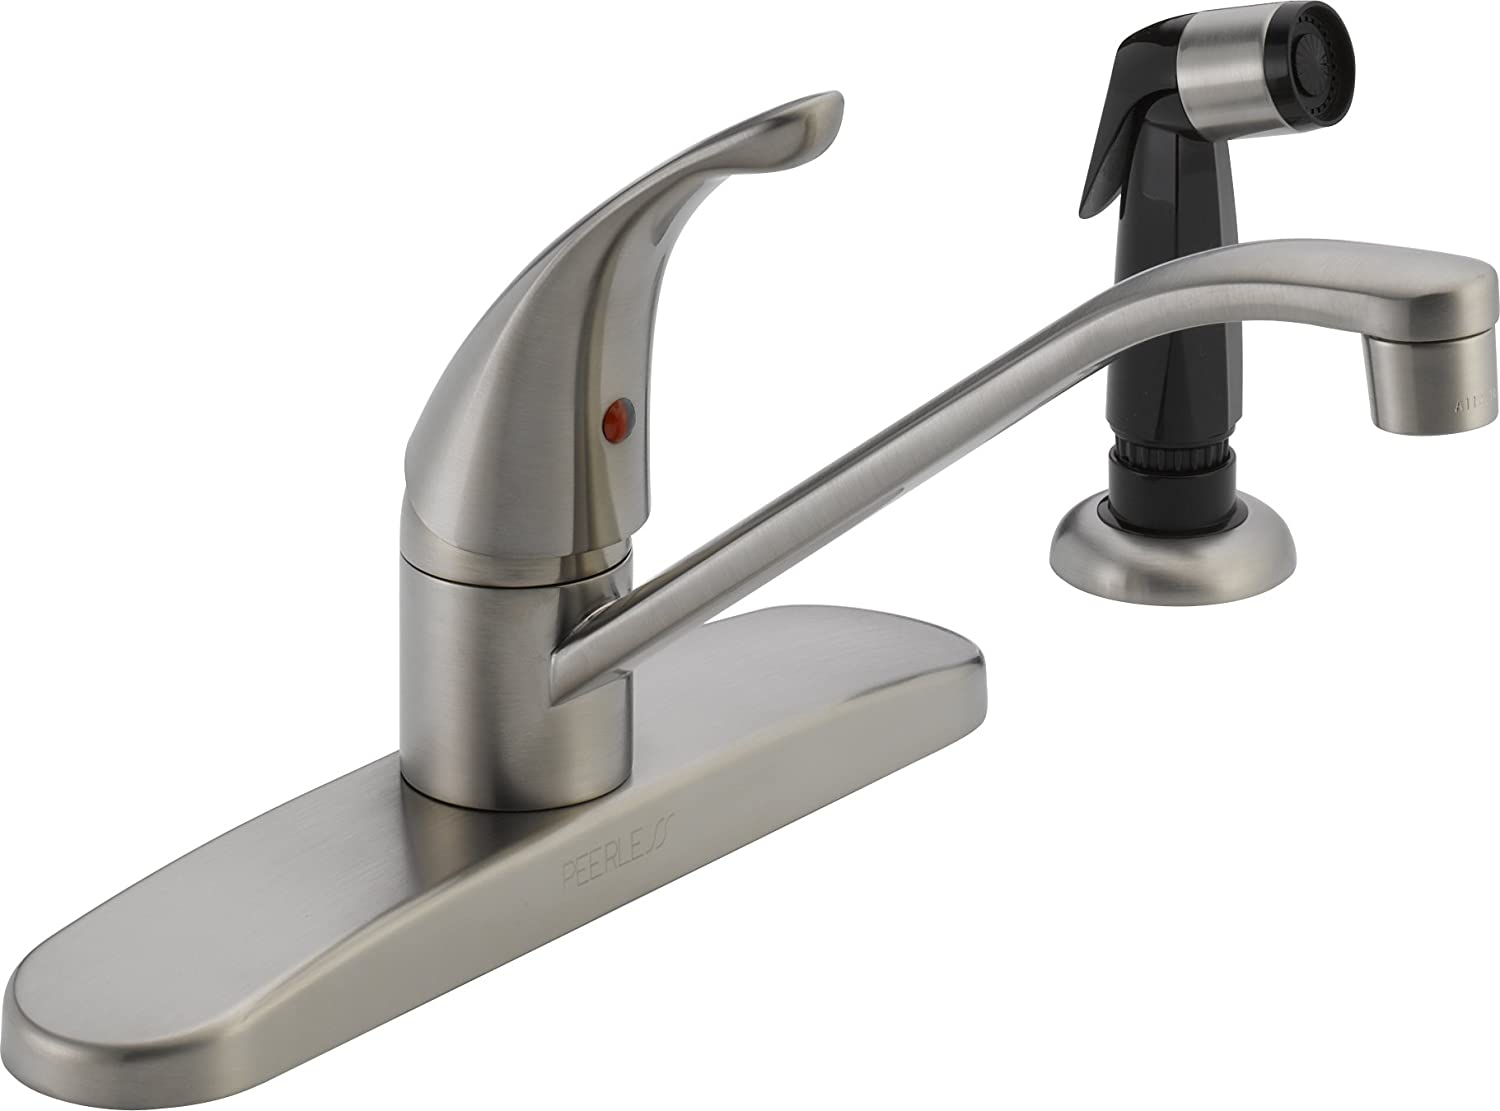 Peerless p115lf ss classic single handle kitchen faucet stainless touch on kitchen sink faucets amazon com